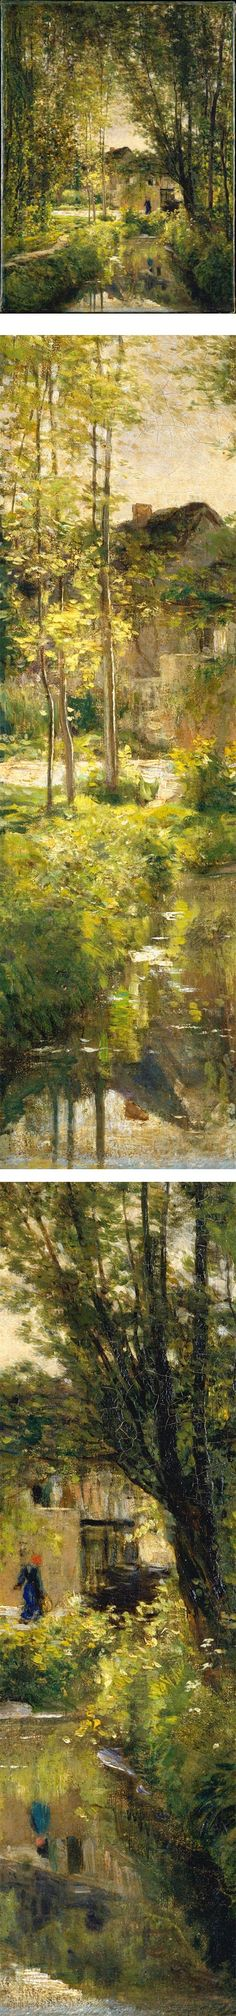 Eye Candy for Today: Daubigny's Landscape with Sunlit Stream